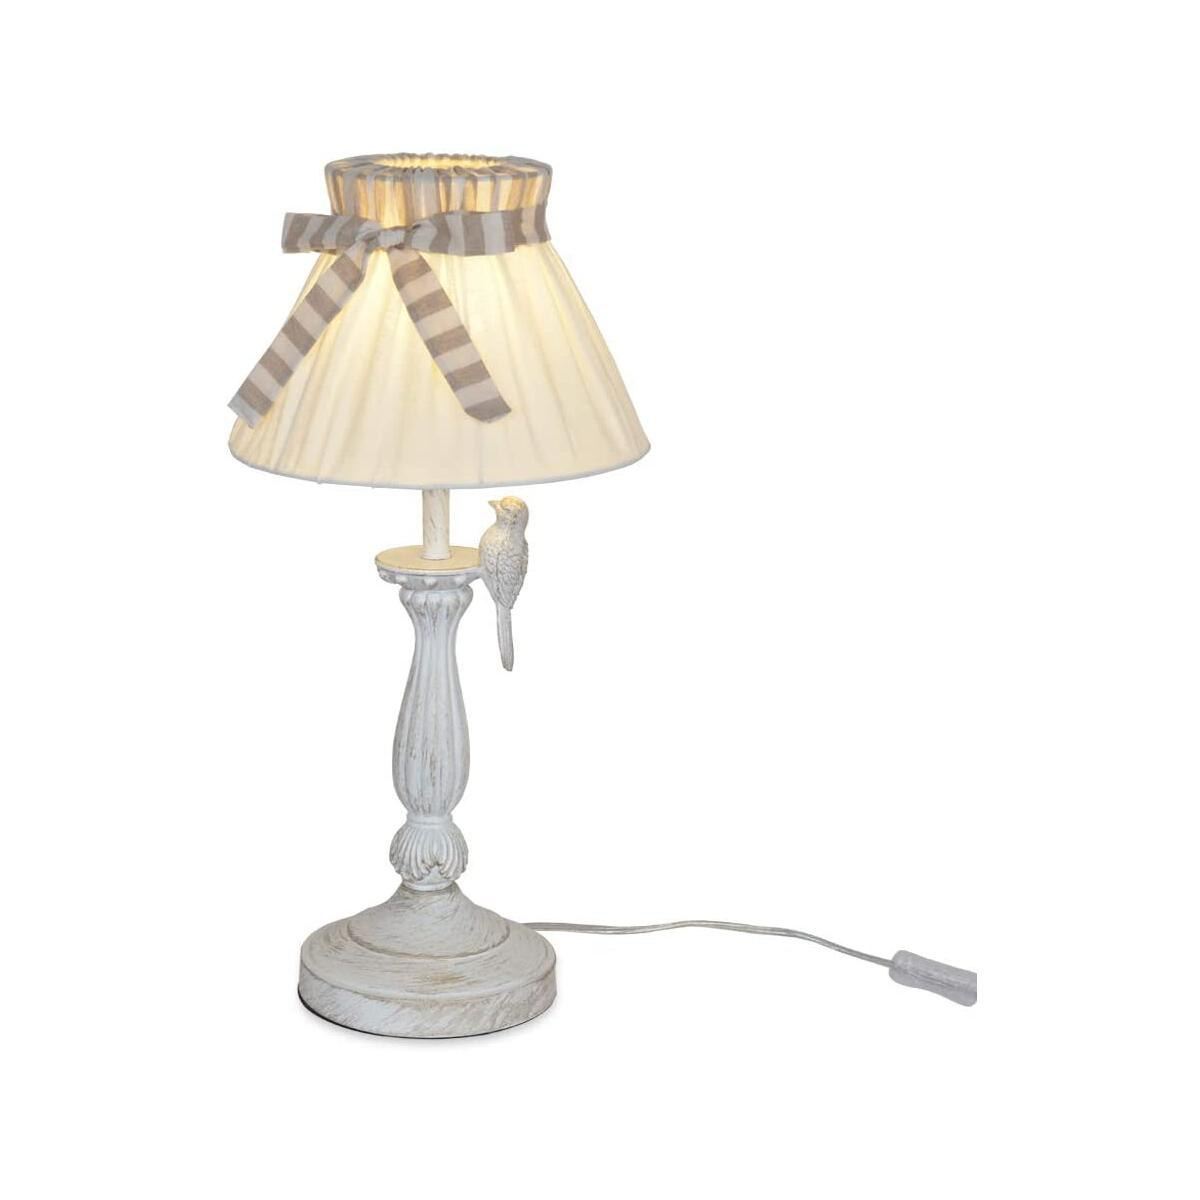 Karmiqi Beside Table Lamps for Bedrooms, Nightstand Light,Bulb Included, Mid Century Farmhouse Side lamp,Fabric Bell Shade for Living Rooms